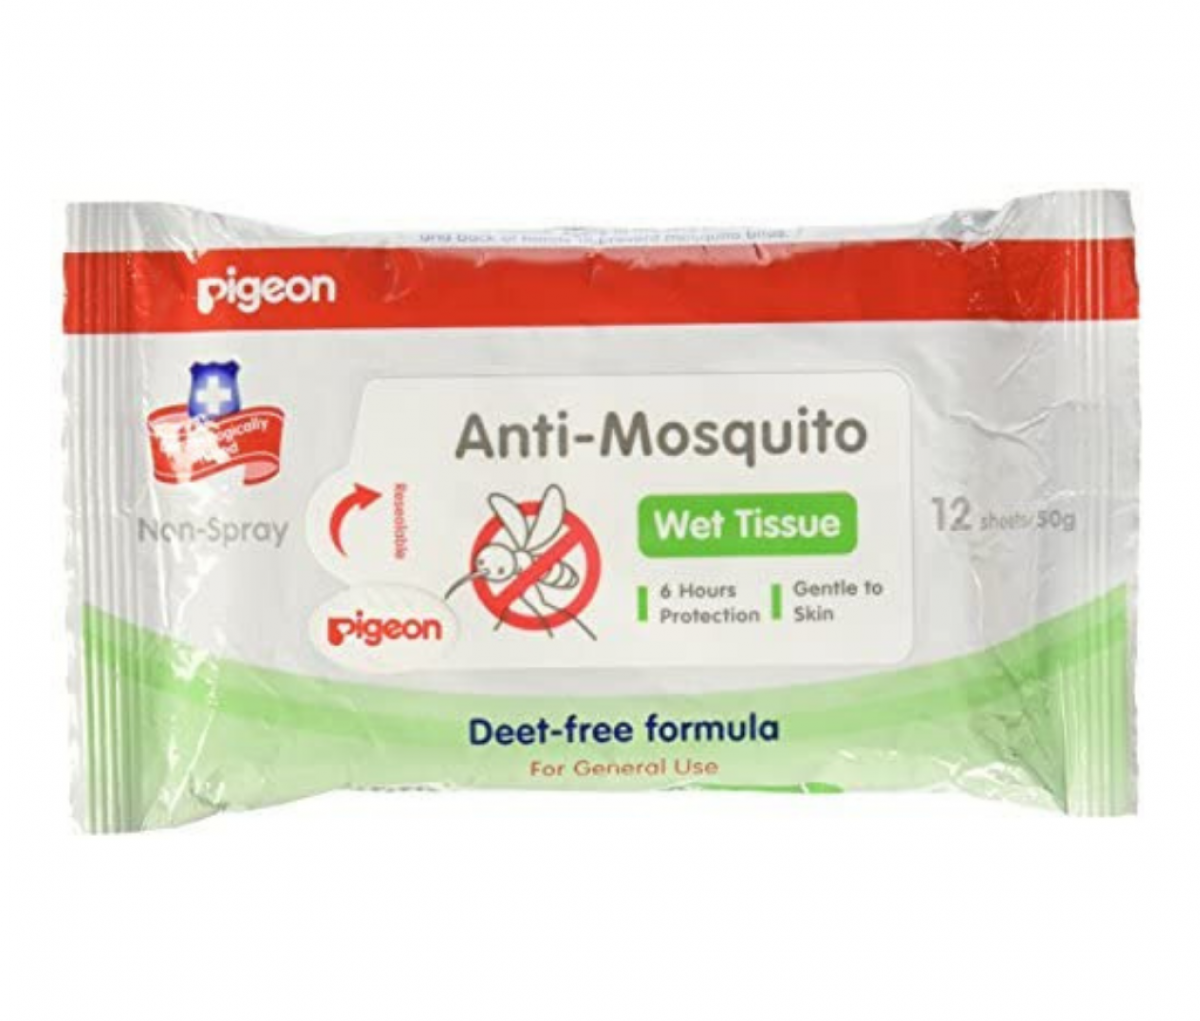 ANTI-MOSQUITO WET TISSUES, 12S WITH INNER CARTON  [26236H]